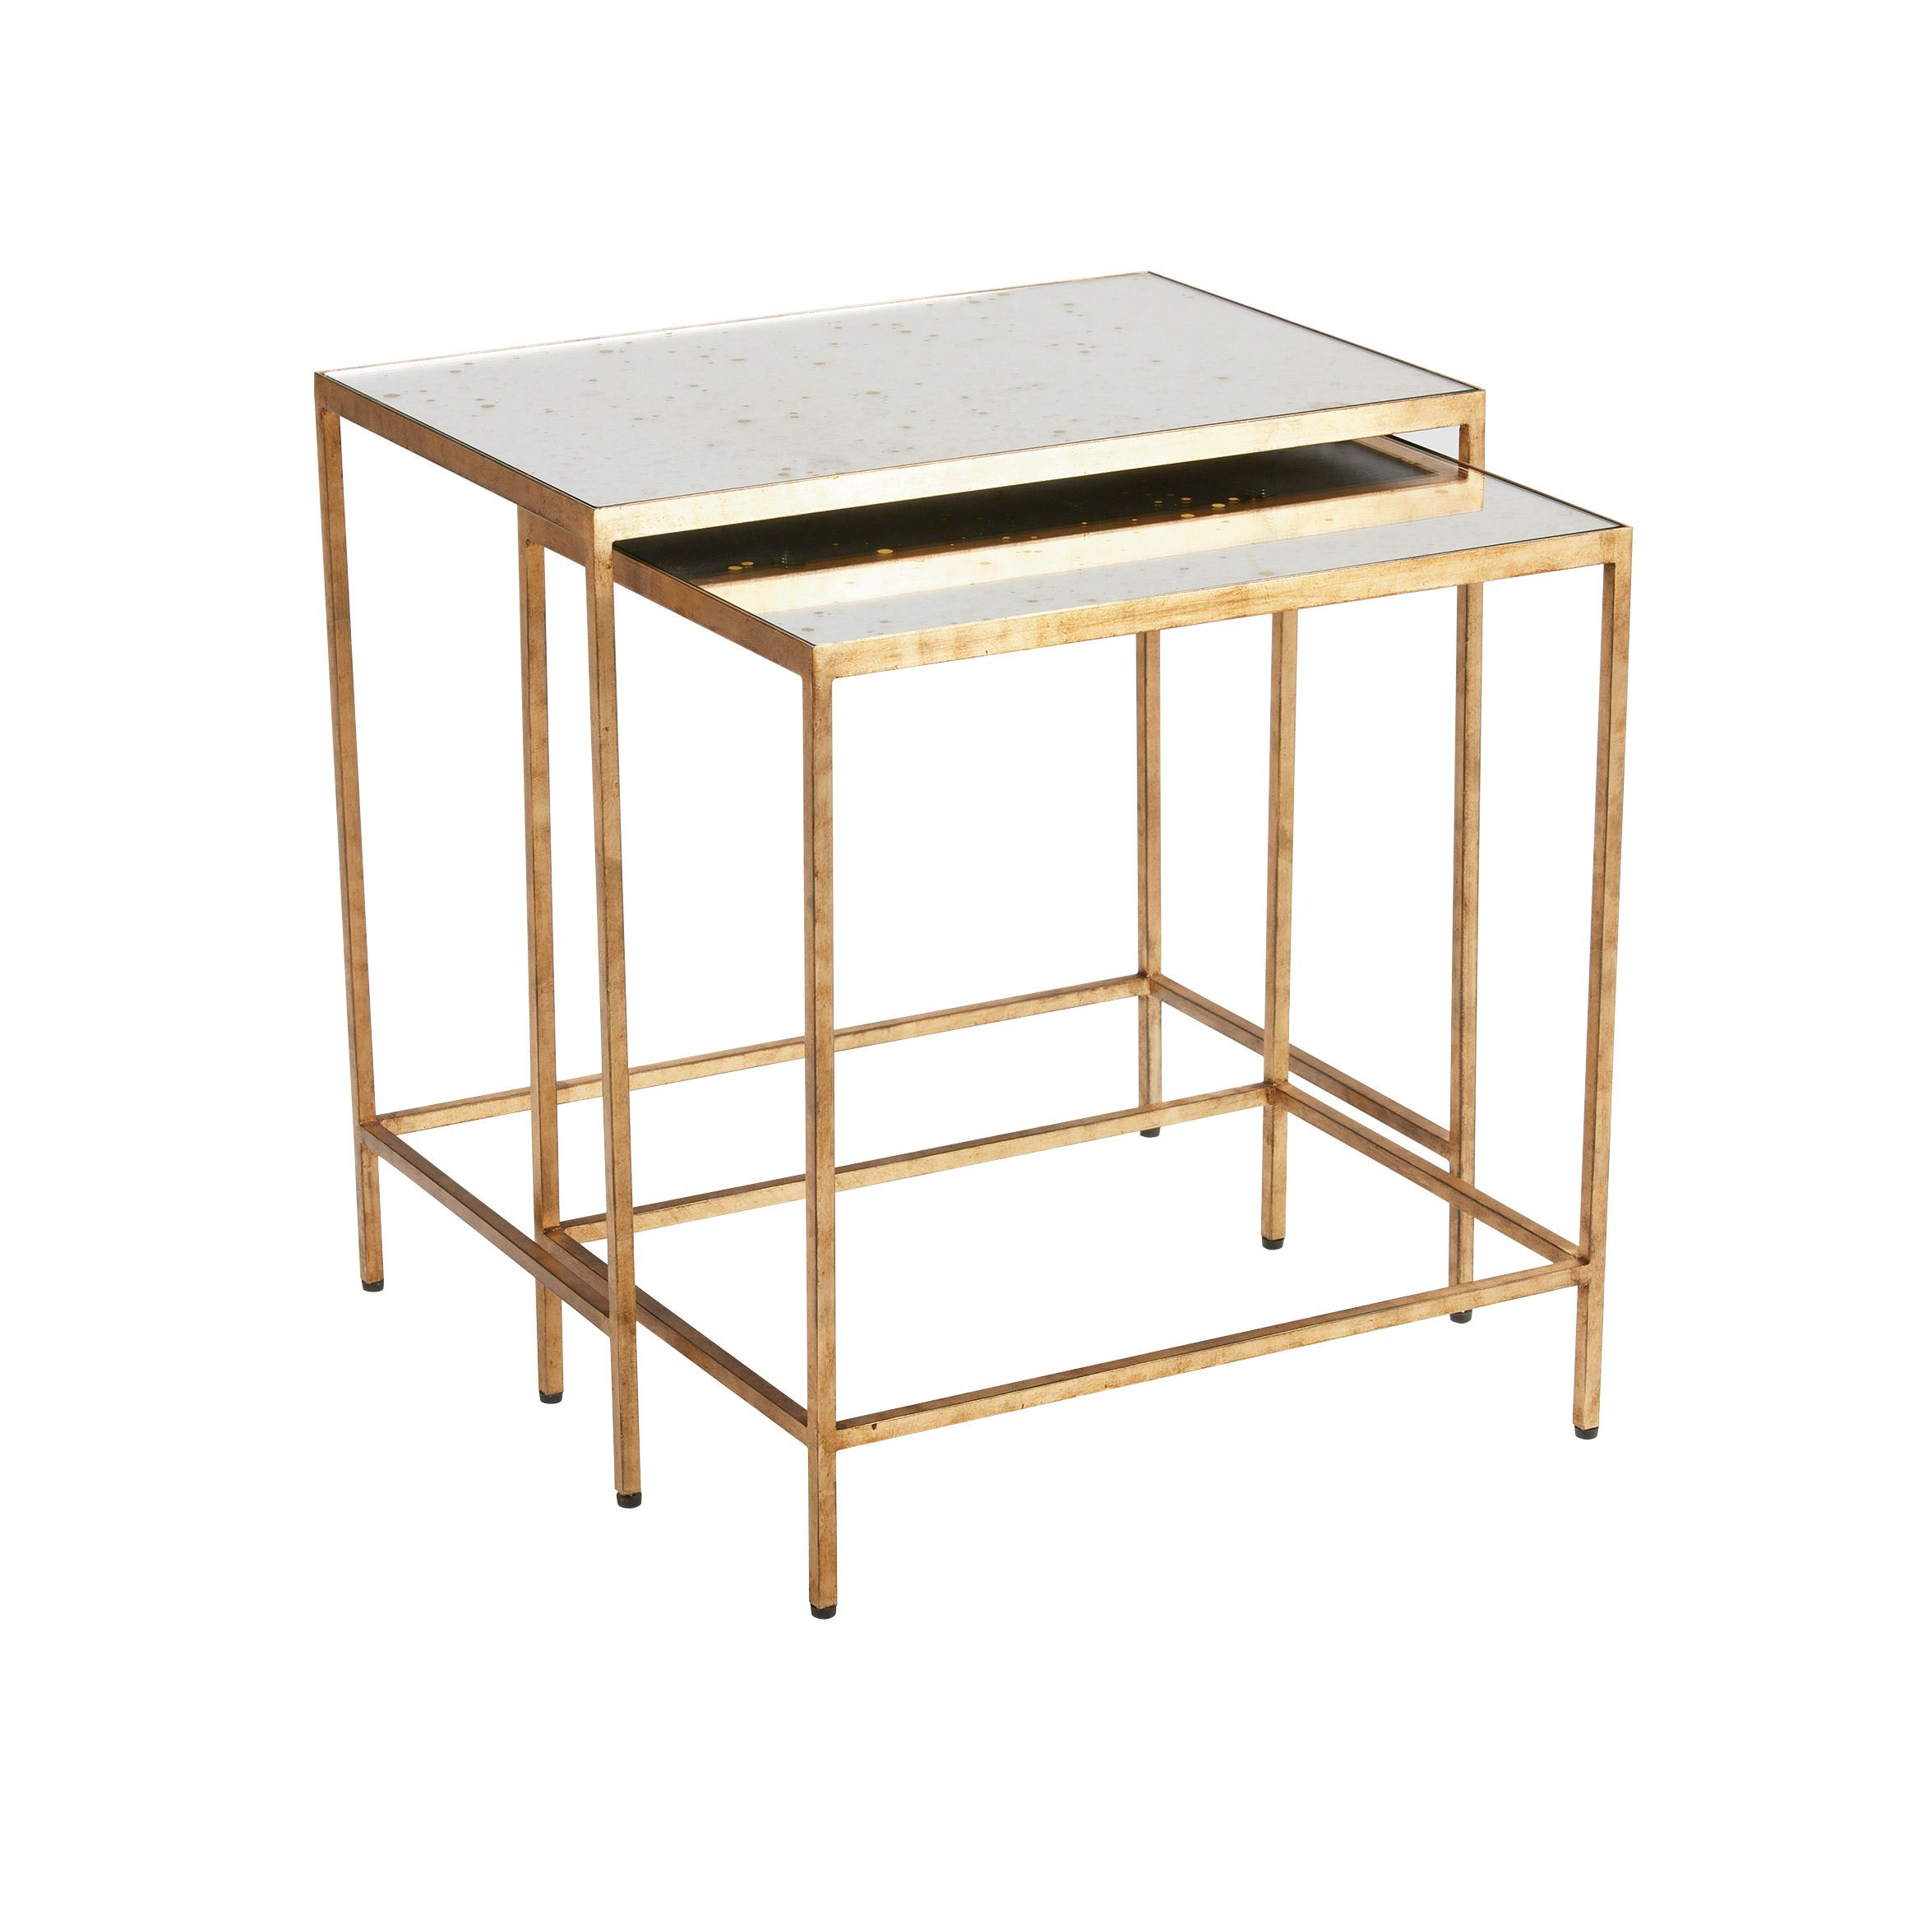 zachary nesting end tables ethan allen mirrored teen loft with desk light brown sofa decorating ideas inch high coffee table iron glass whalen furniture retailers where pottery